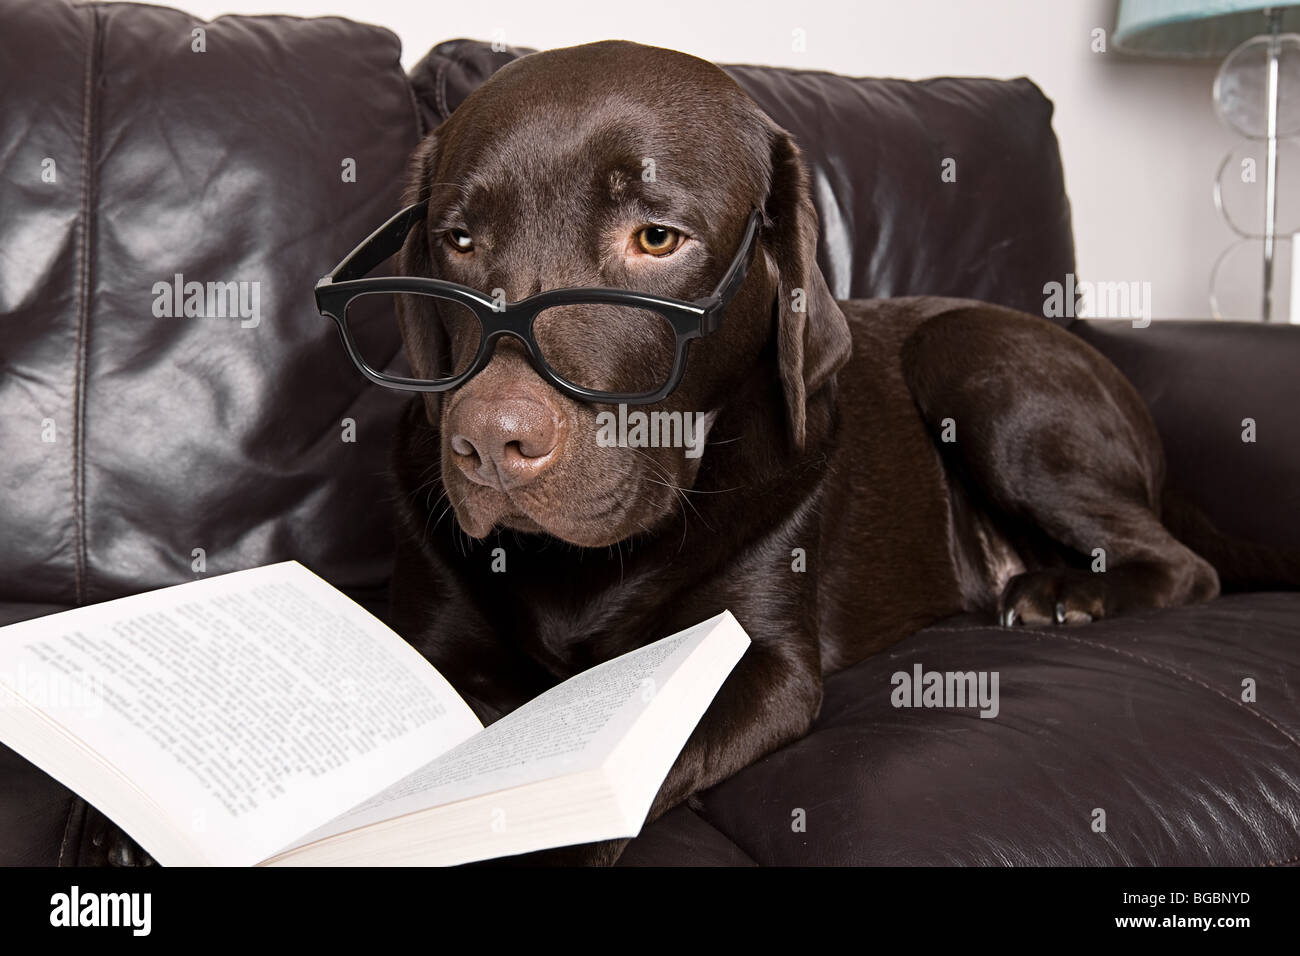 Funny Shot Of A Chocolate Labrador With A Good Book On The